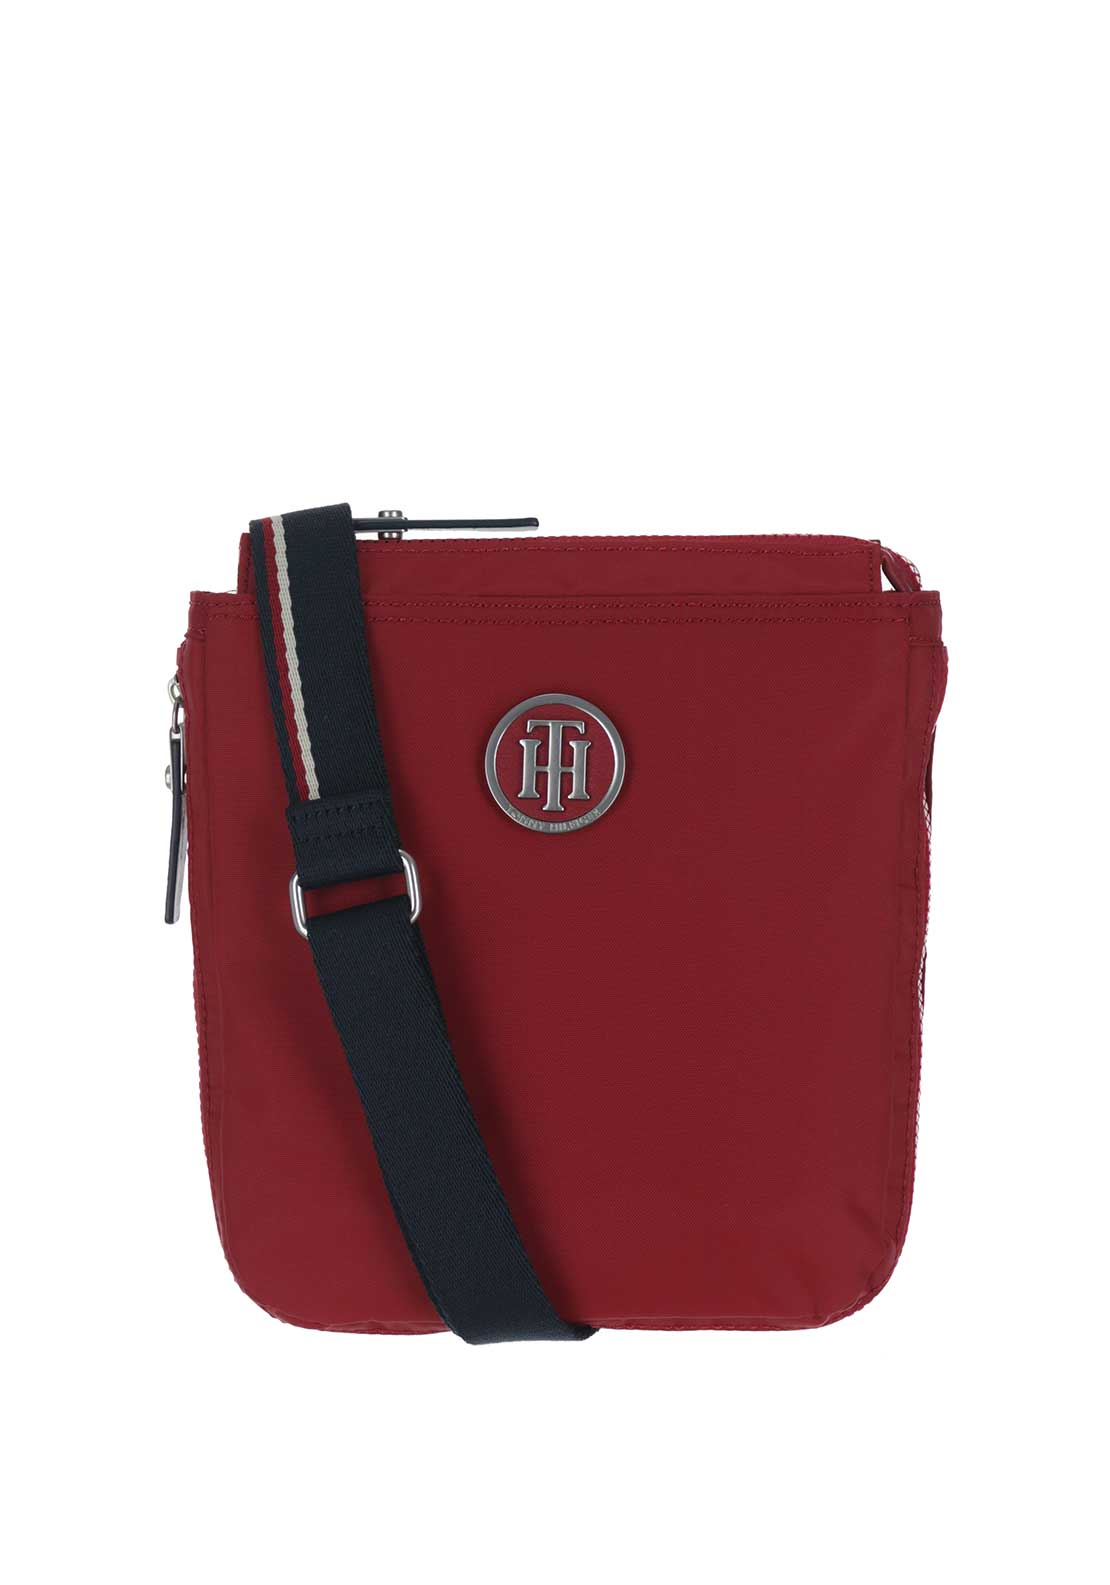 Tommy Hilfiger Sporty Small Crossover Bag, Red